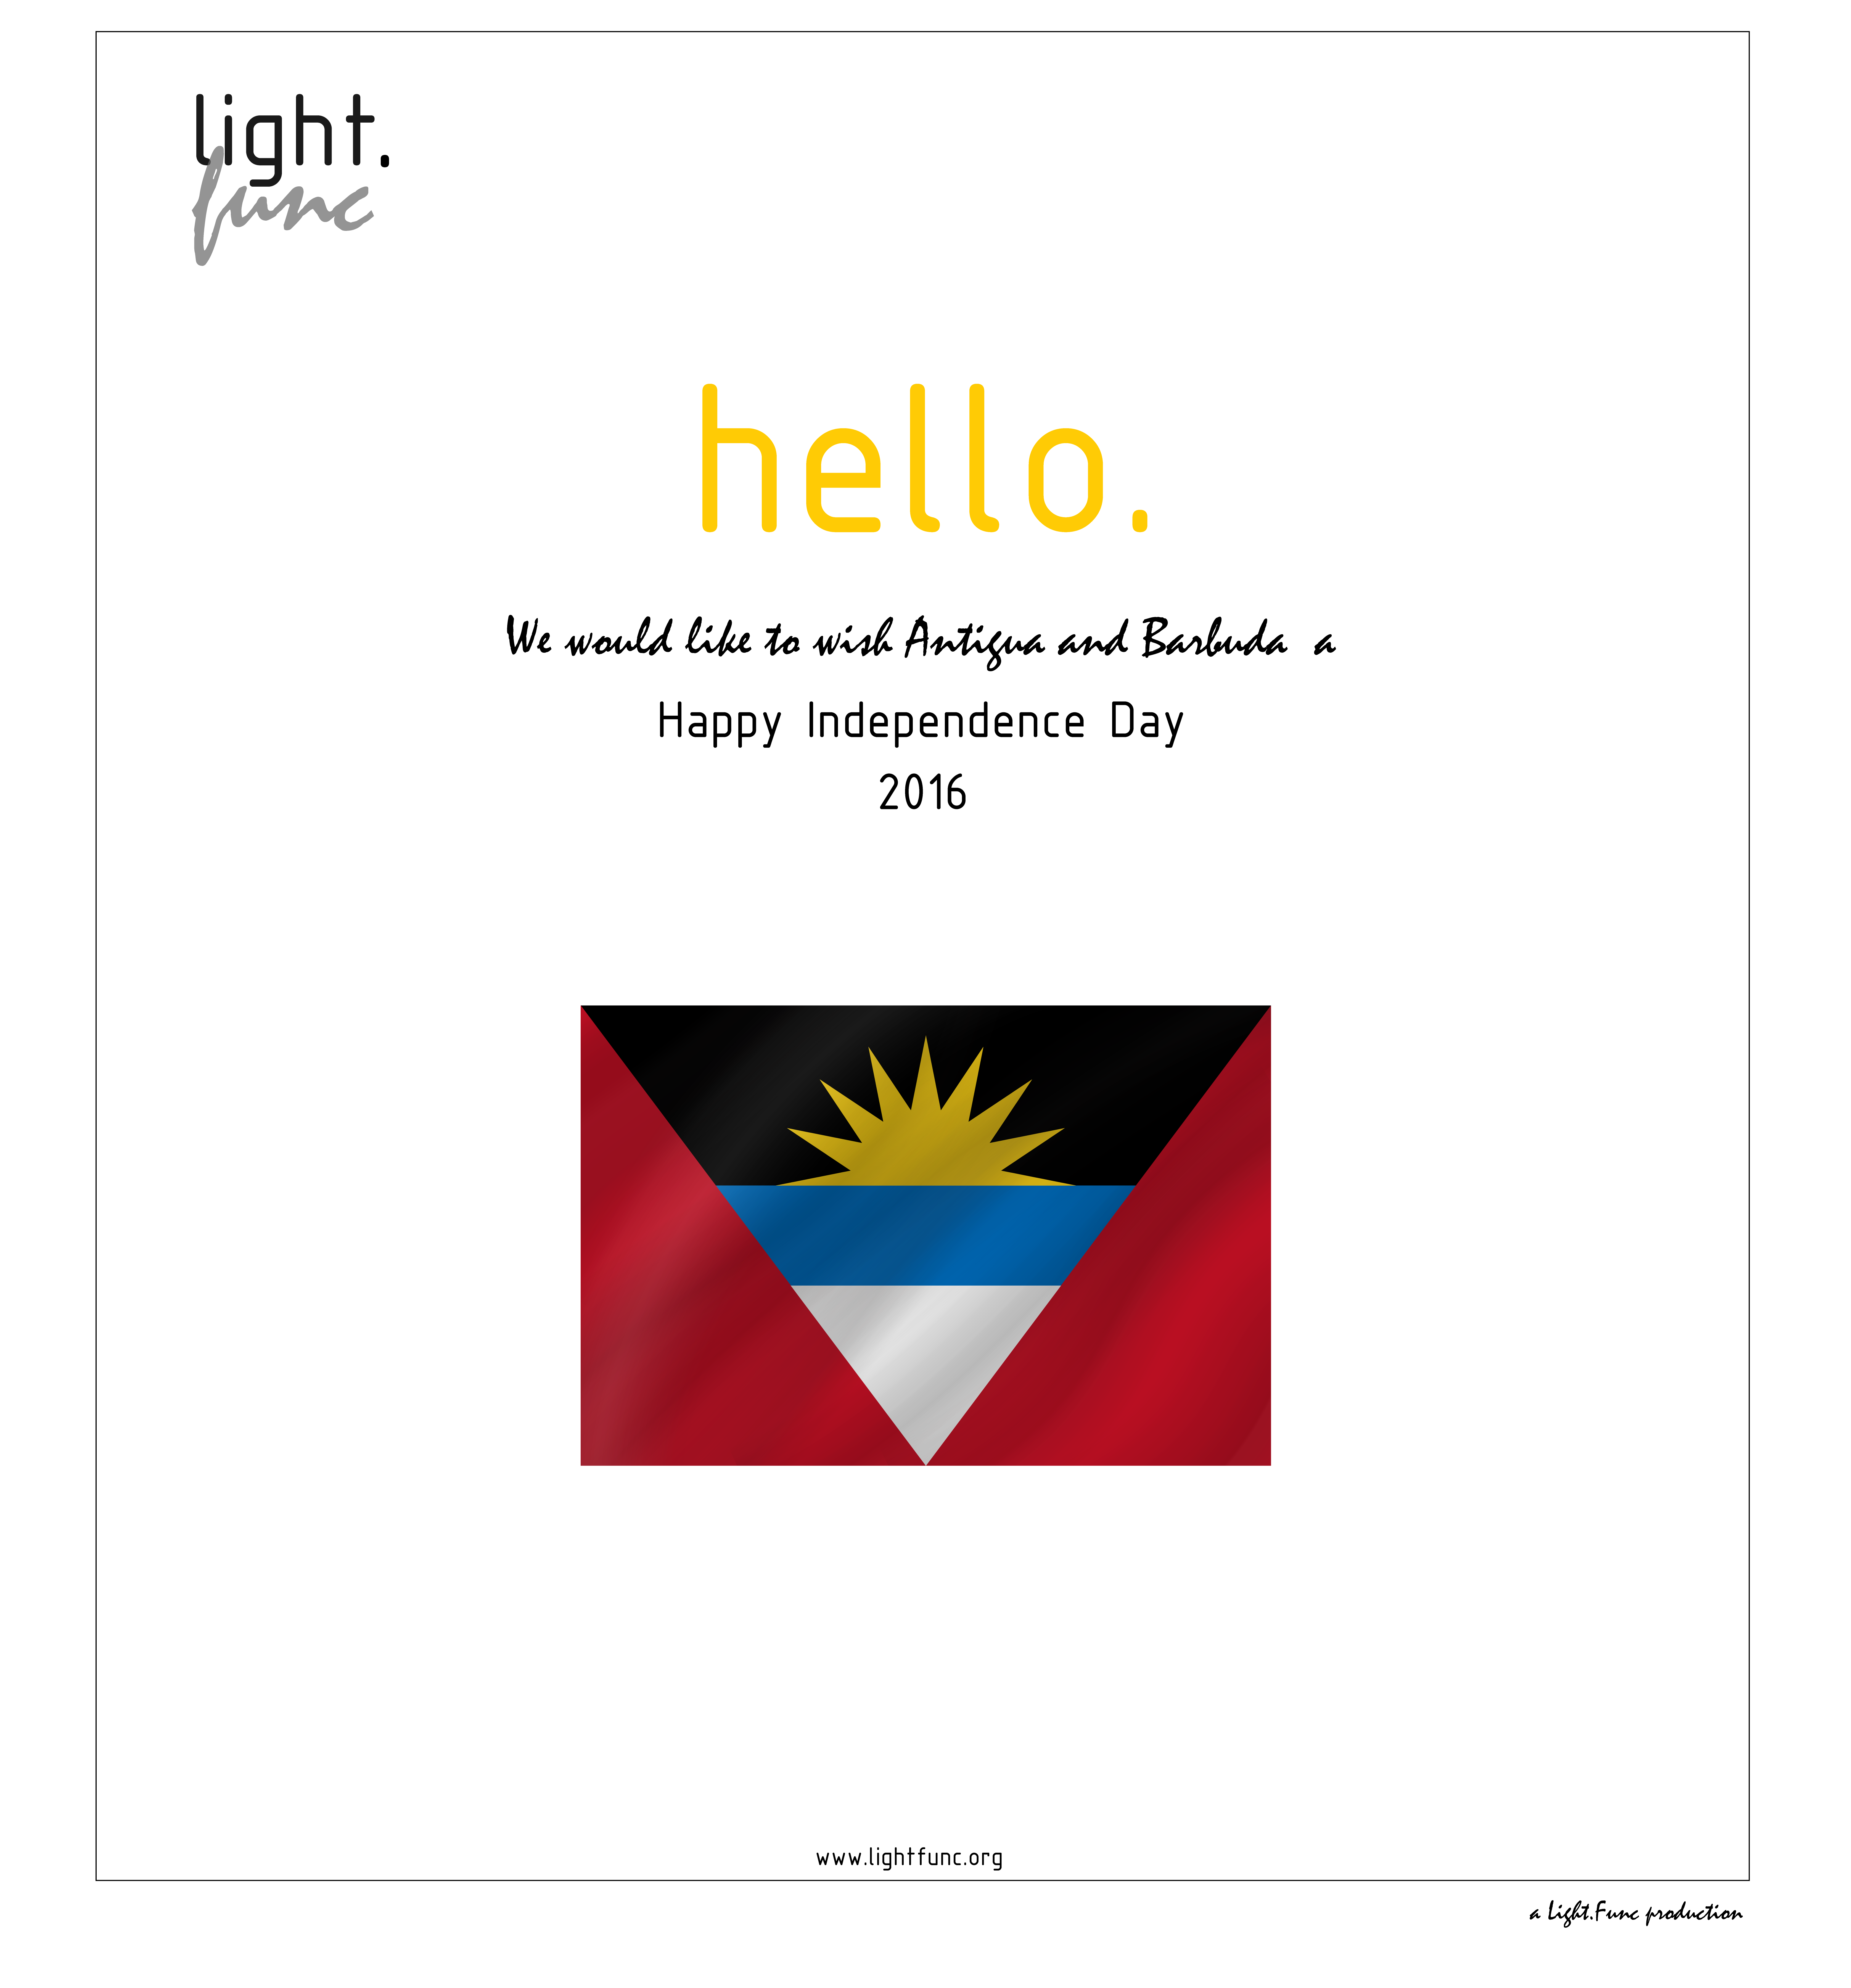 Happy Independence Day Antigua And Barbuda Lightfunc History Photography Nature Architecture Design Ar Happy Independence Day Independence Day Design